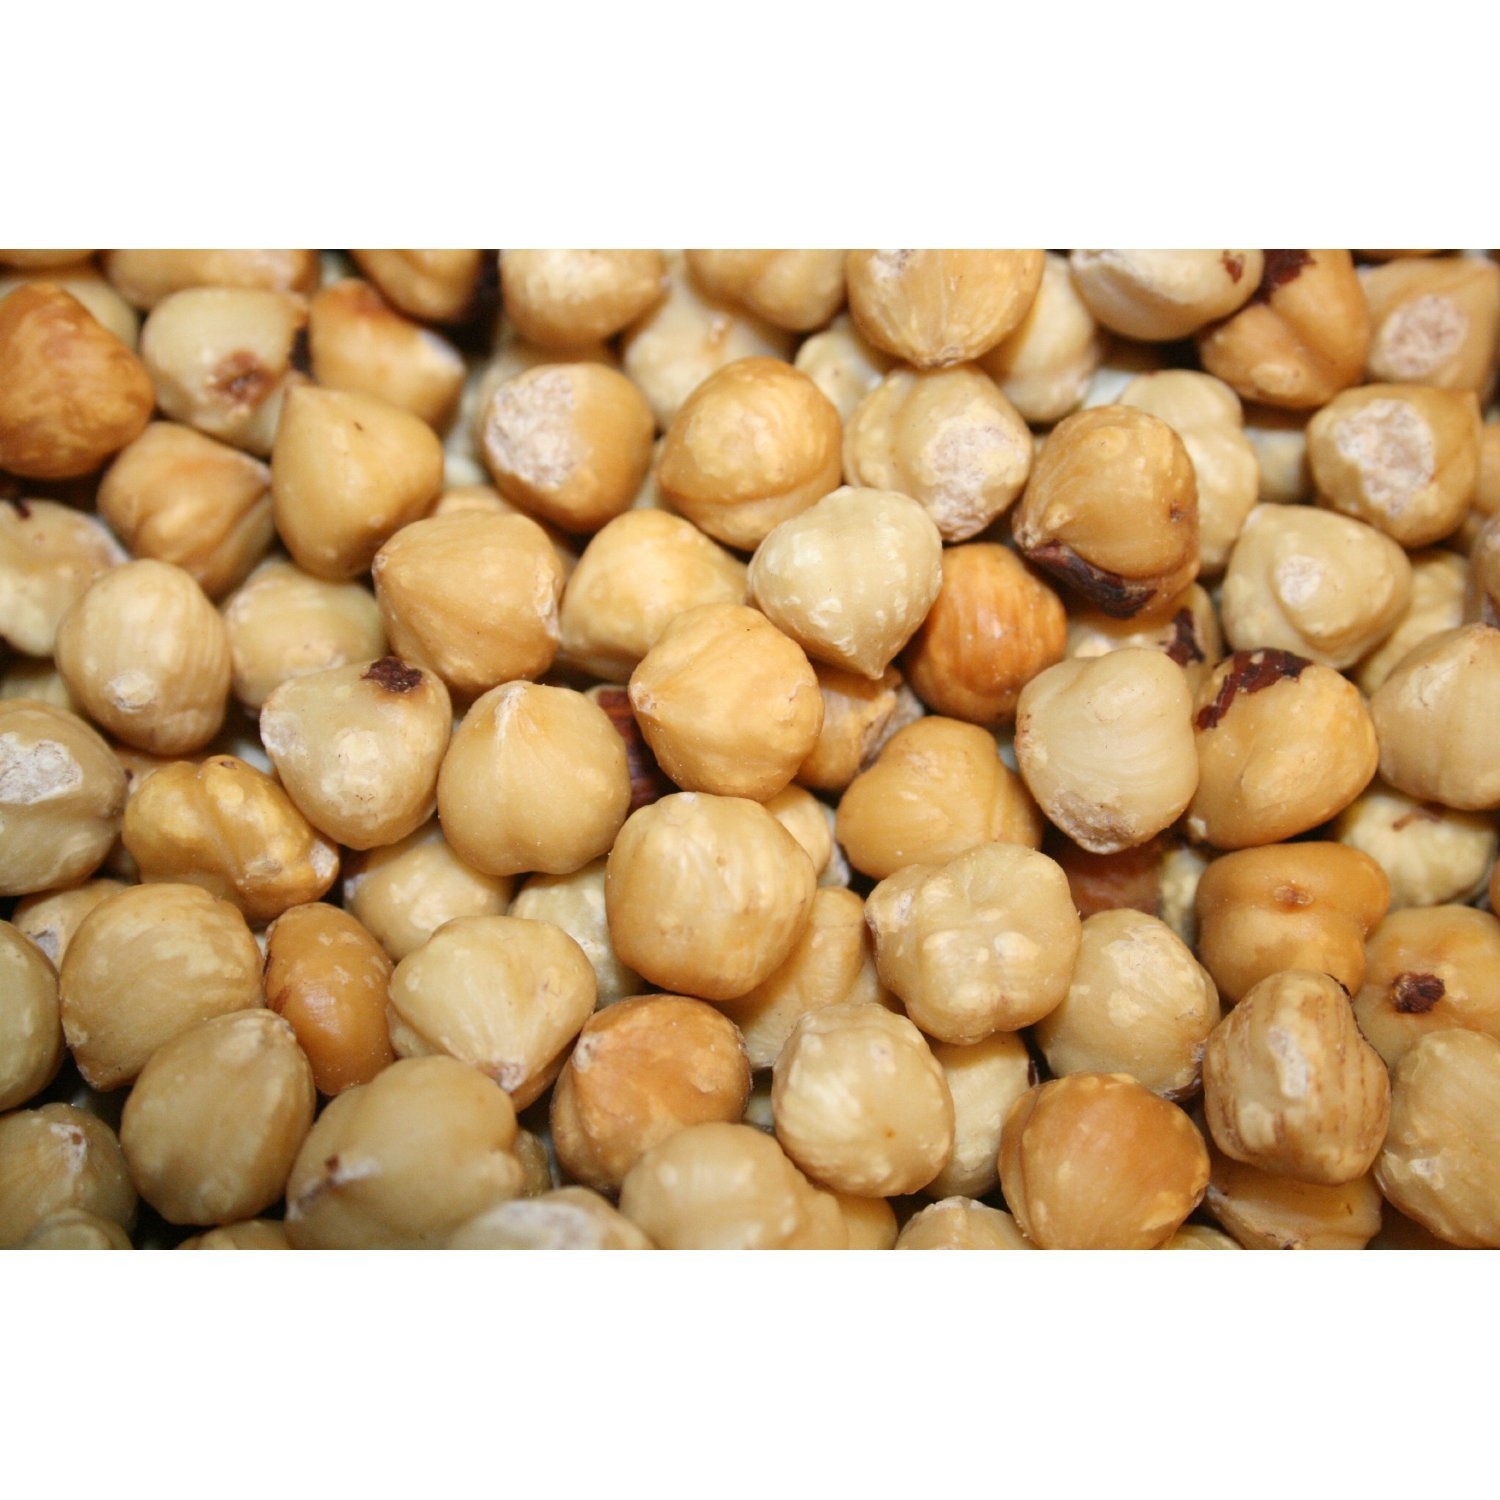 Hazelnuts Blanched Roasted Unsalted, 10Lbs by Bayside Candy